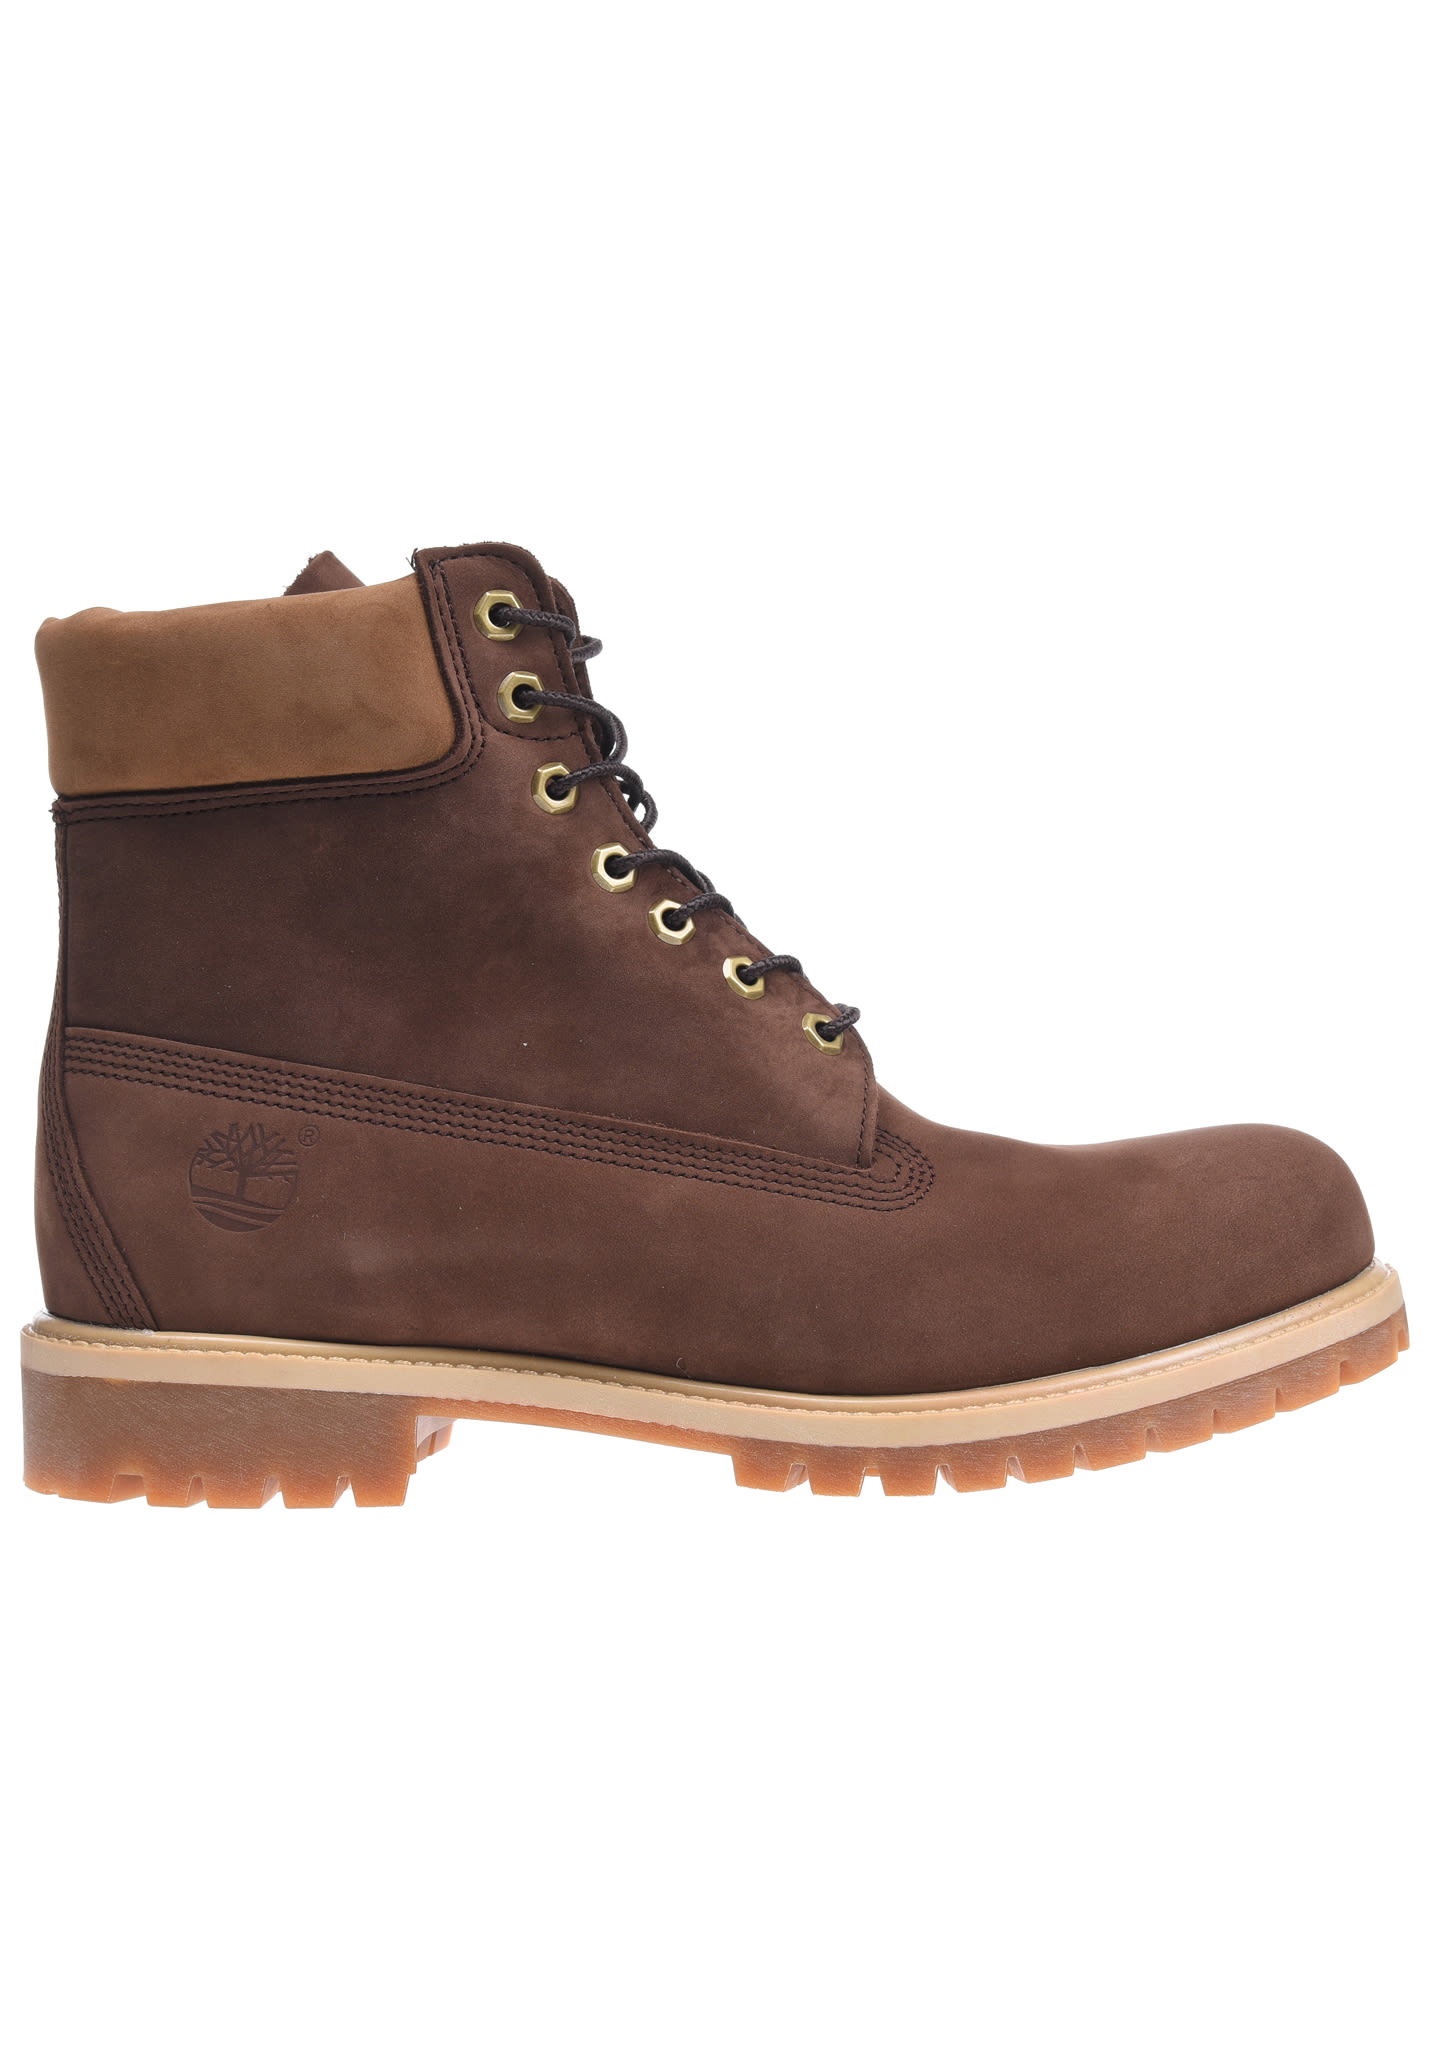 Pour Premium Botte Timberland 6in Homme c4RALj35qS